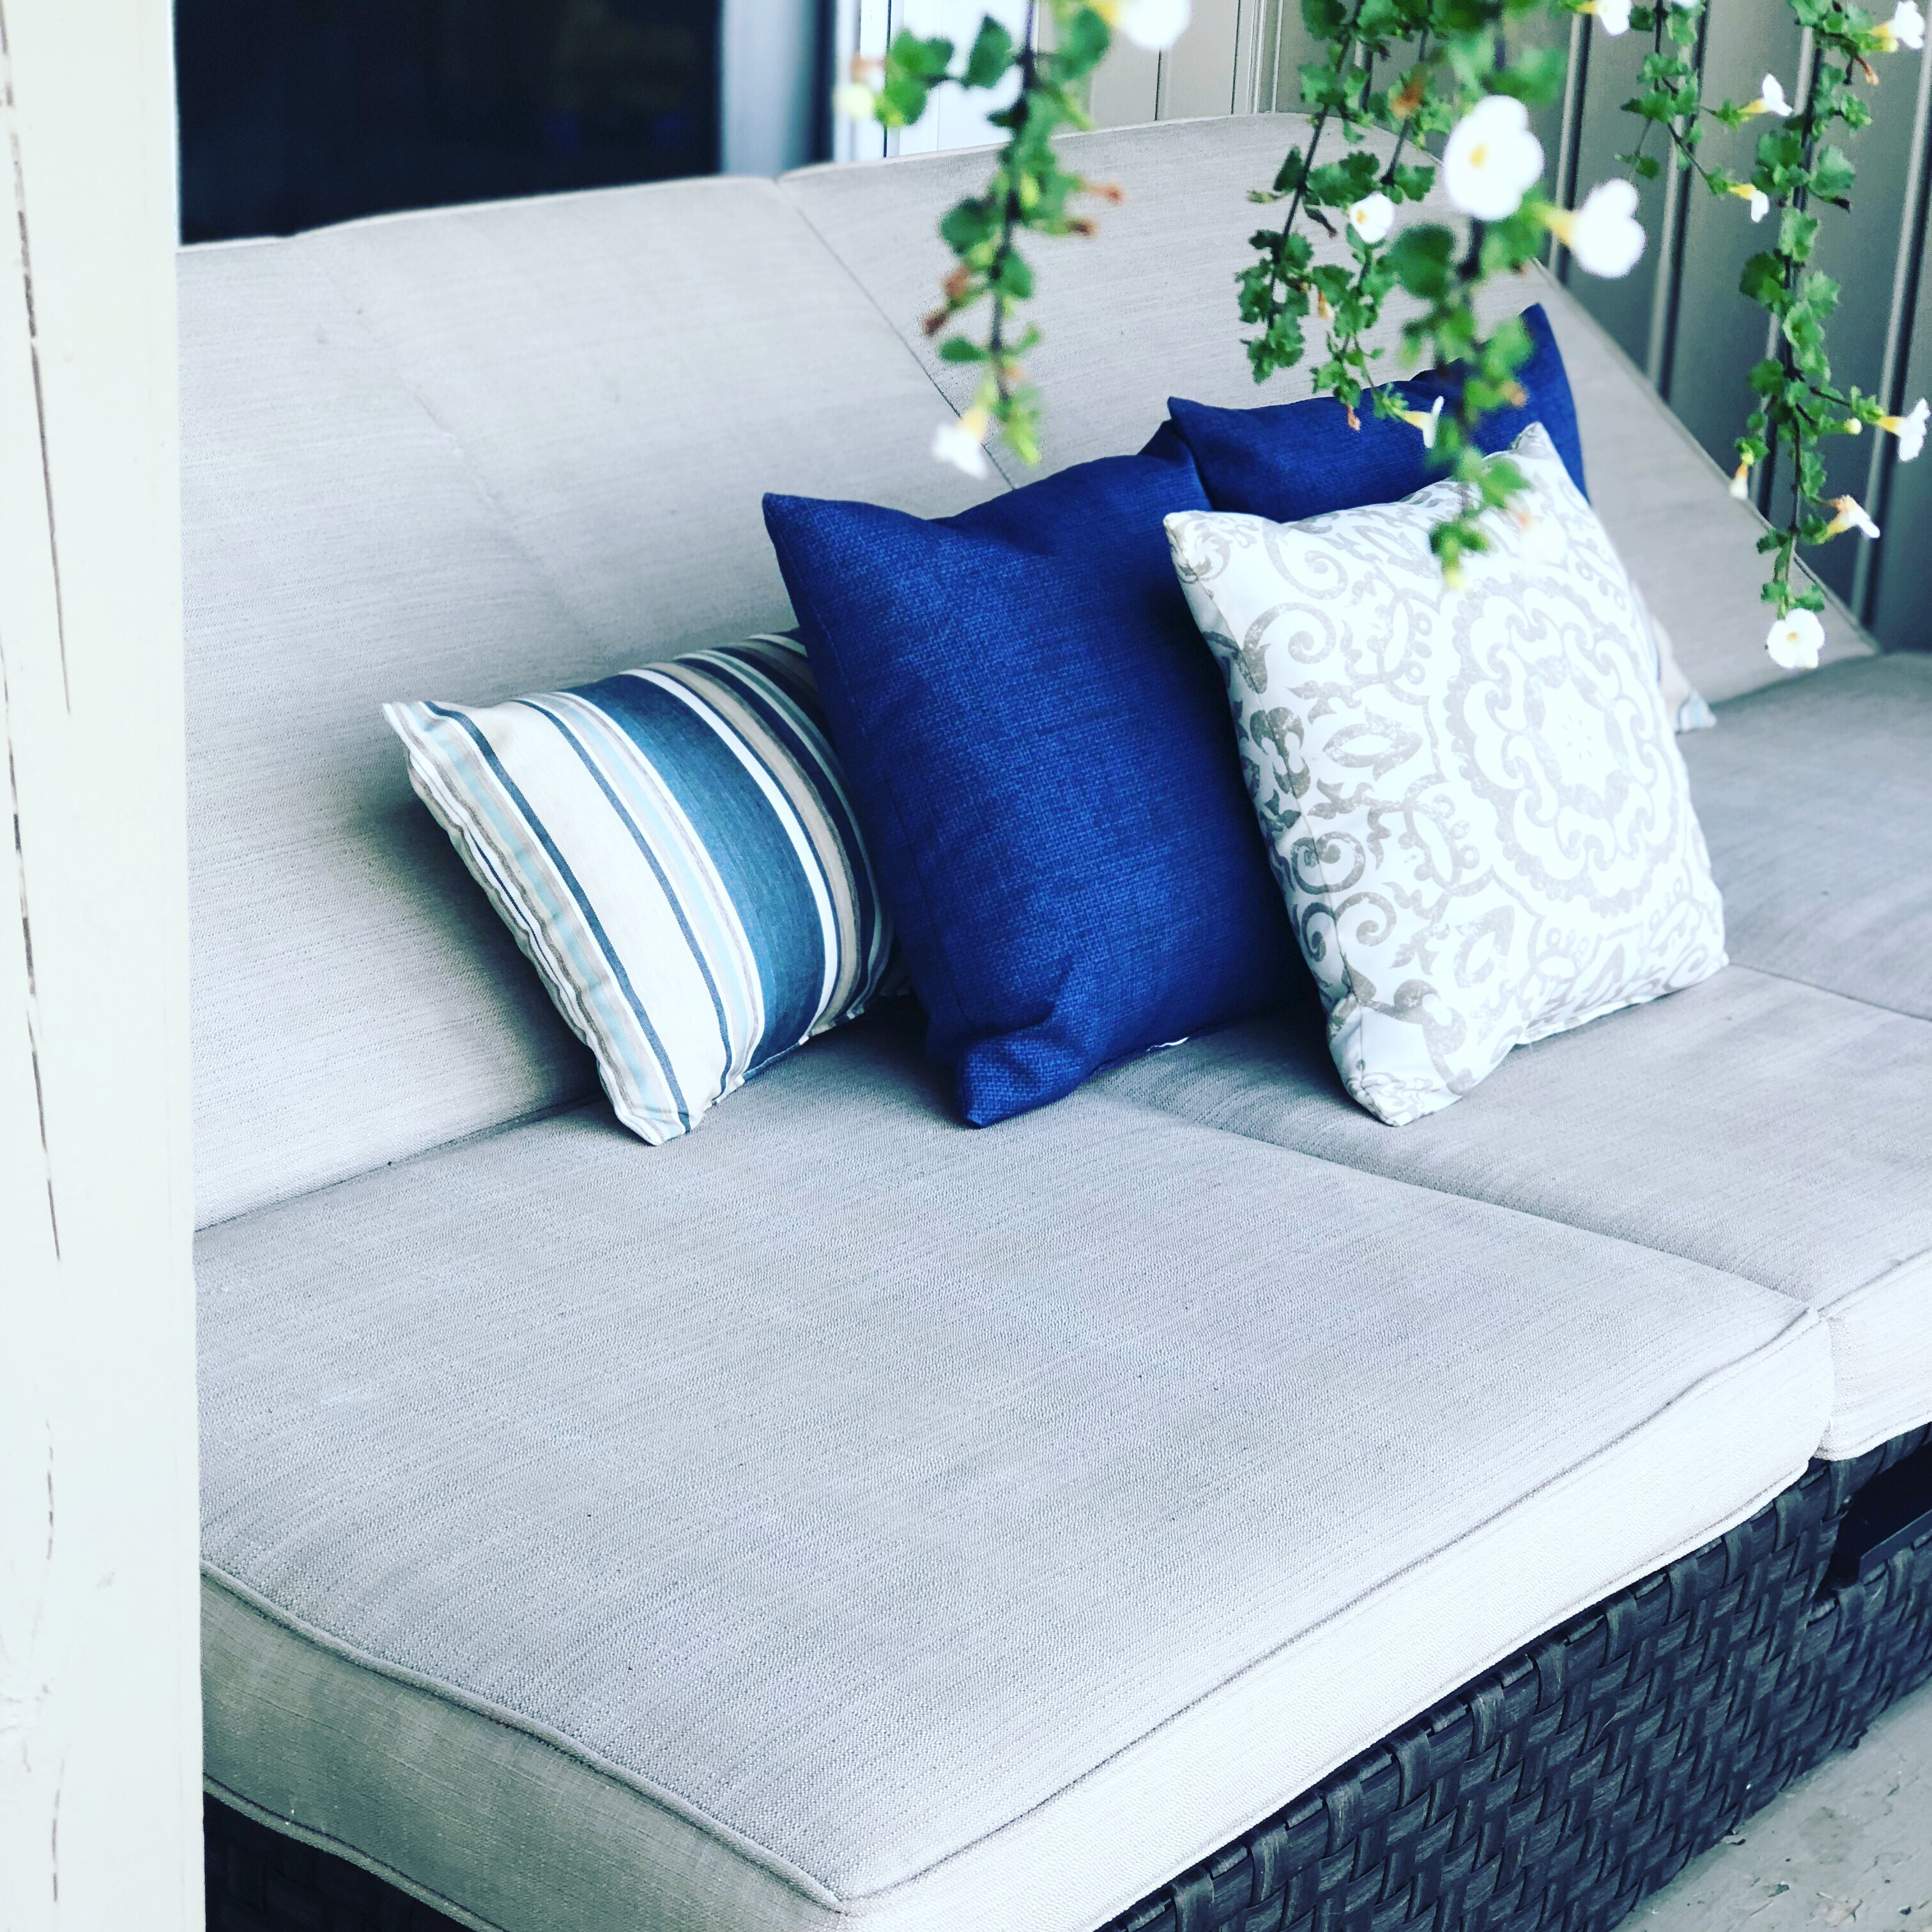 Walmart Wicker Convertible Chaise and Loveseat with Blue and Tan Accent Pillows